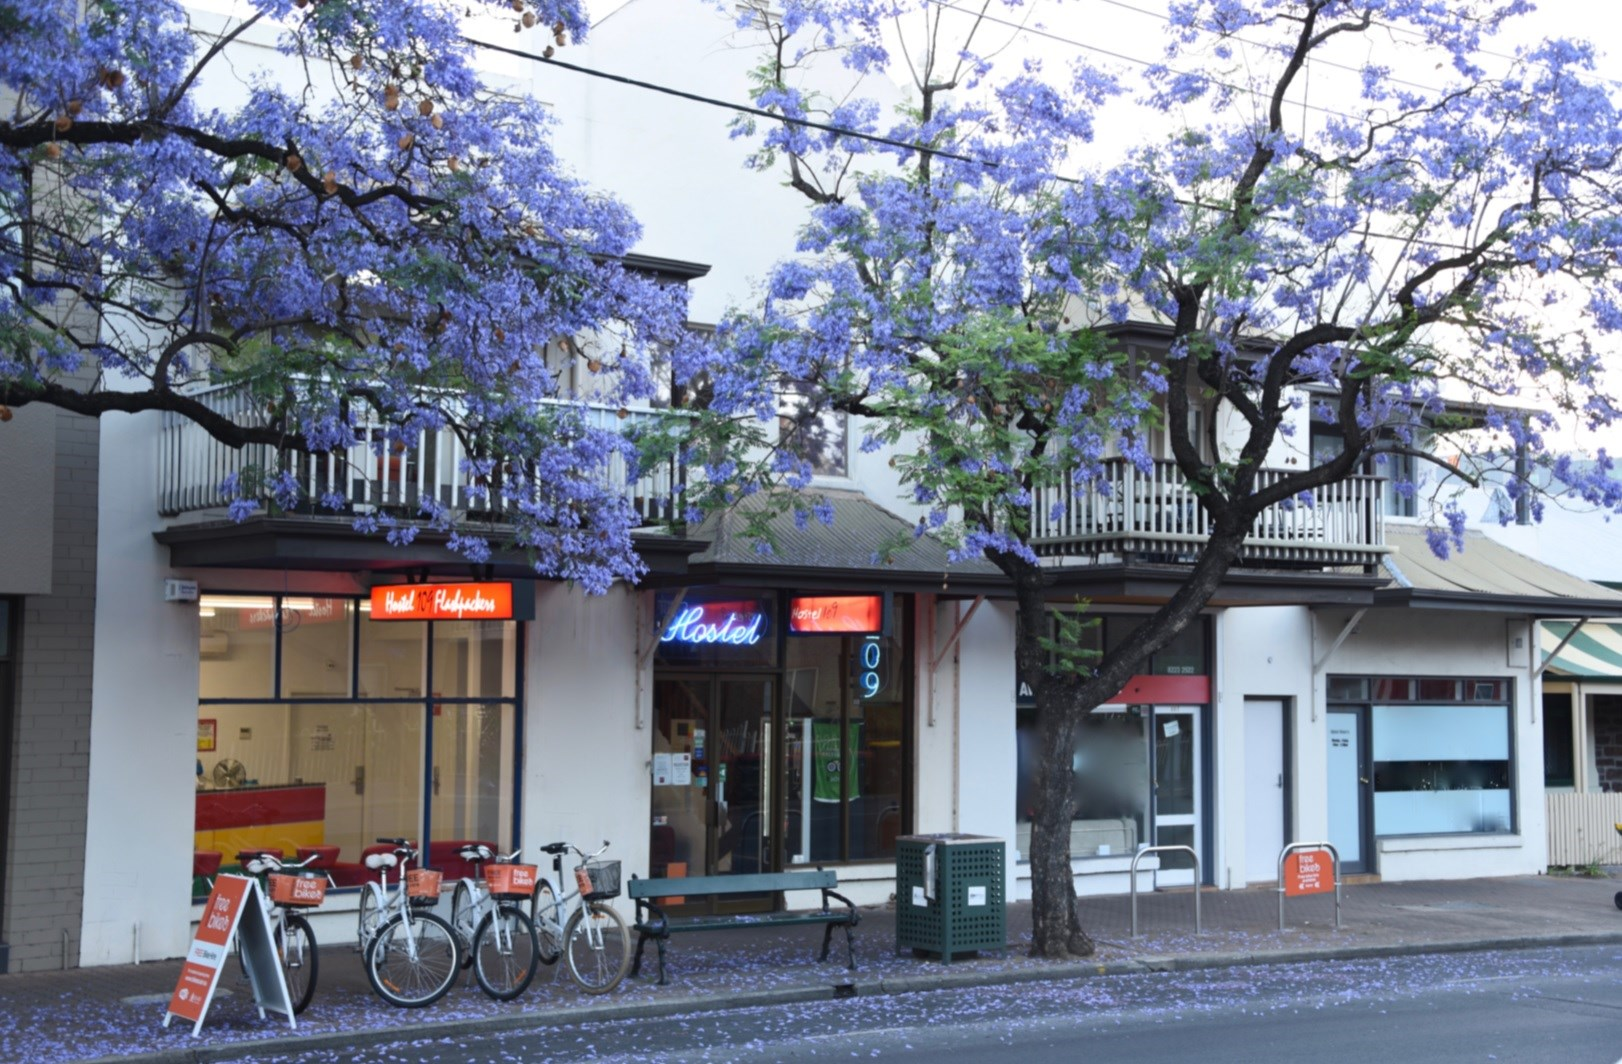 Private Commercial For Sale 109 Carrington Street Adelaide SA 5000